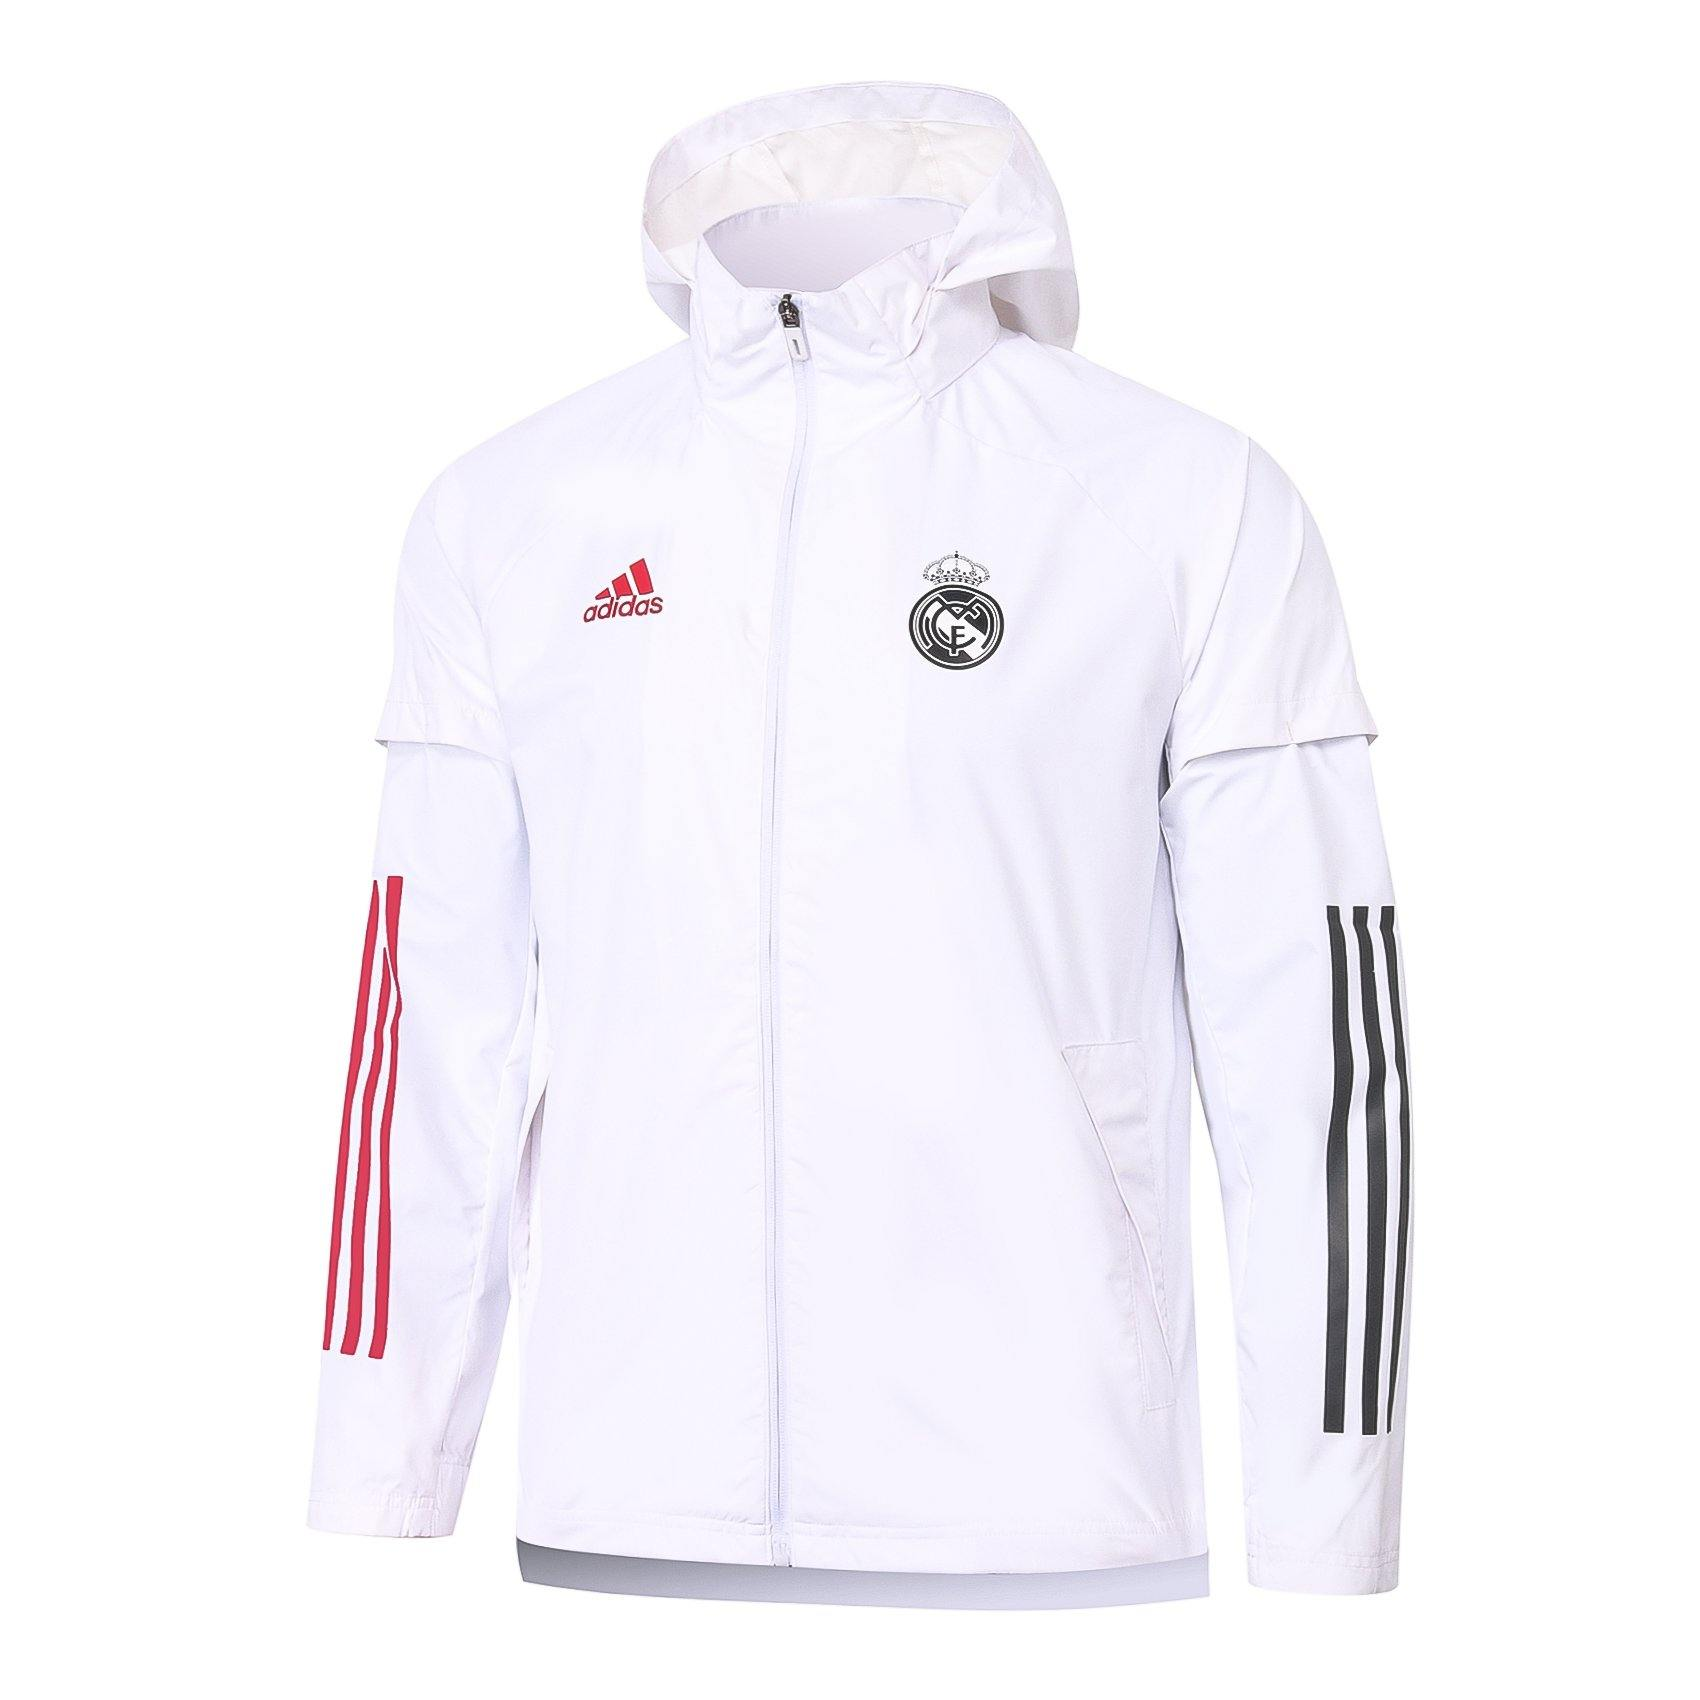 Veste à capuche Real Madrid Blanc Adidas 2021 Homme Foot Online freeshipping - Foot Online